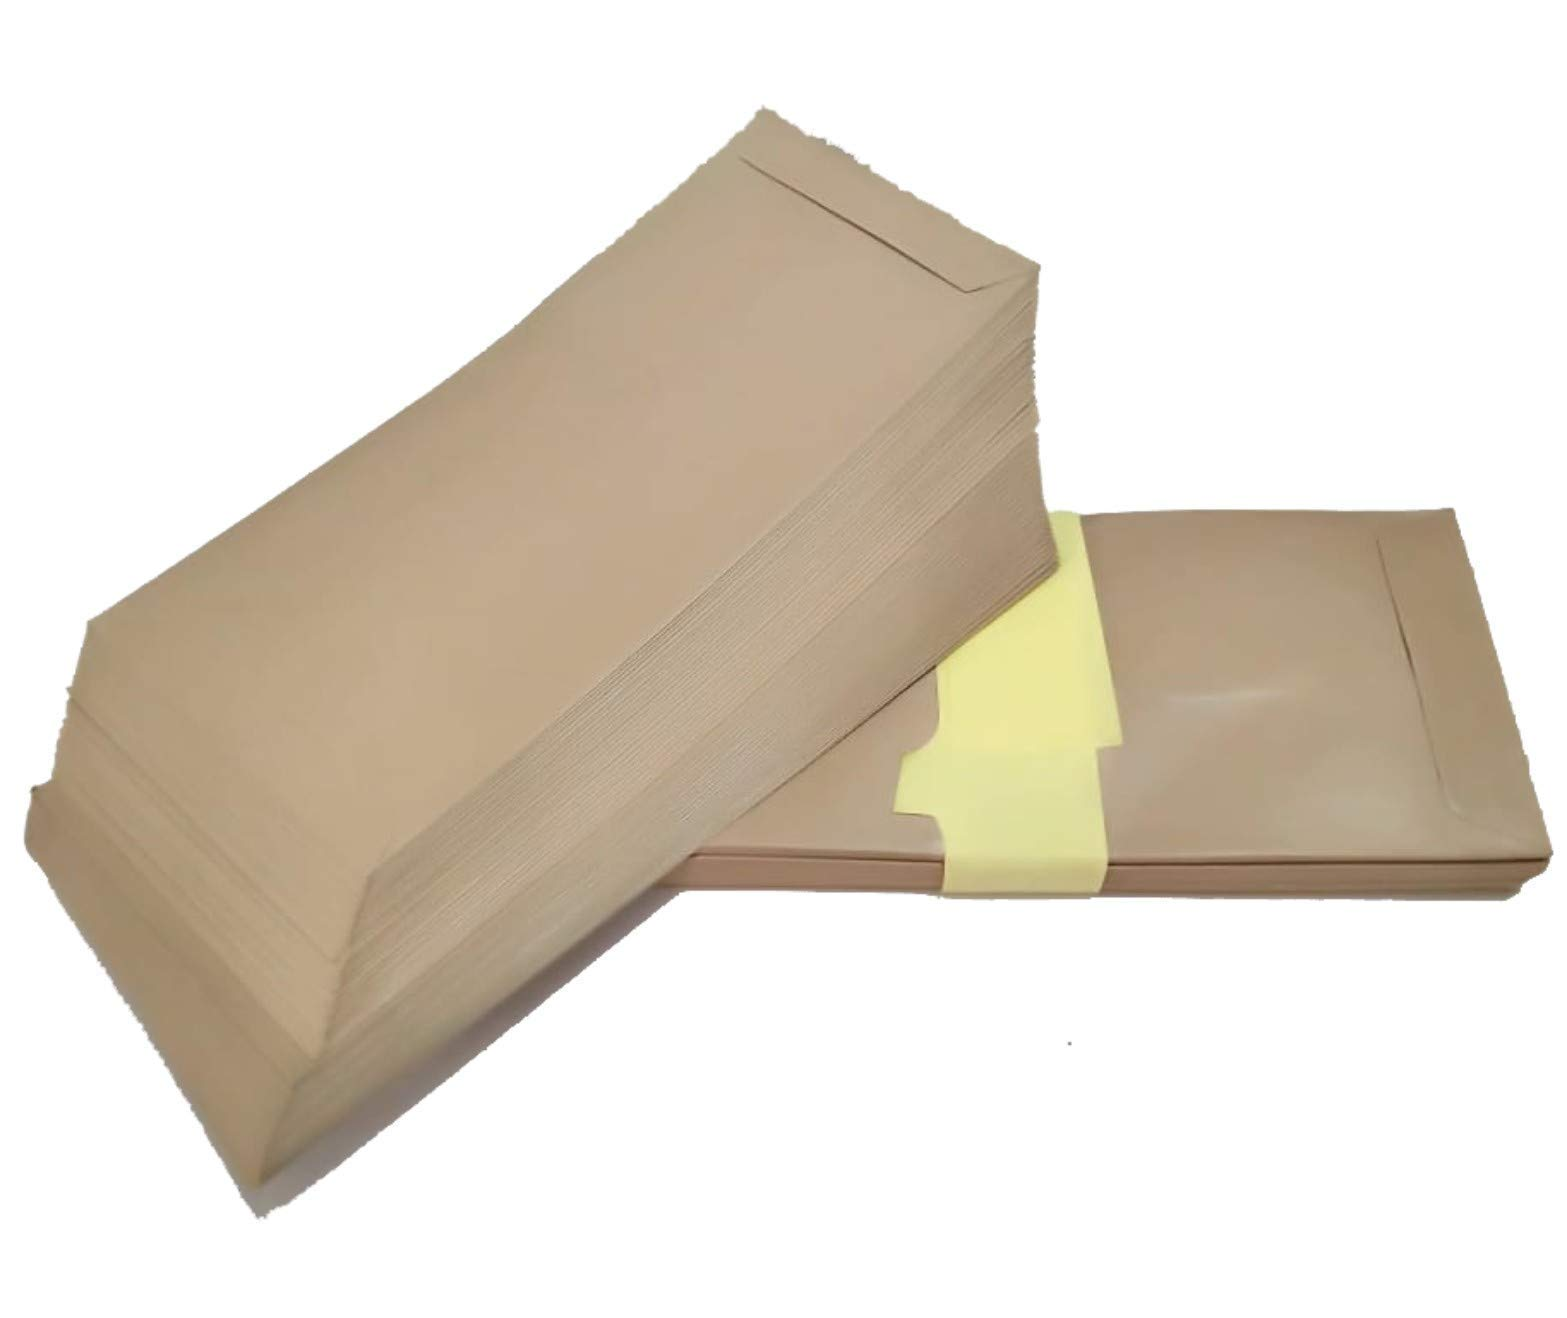 Paper envelope by Deepa's Group paper envelope for courier paper envelope for business brown color paper 10x4.5 size small size 105gsm paper weight pack of 100pcs. (B07VTPBY7H) Amazon Price History, Amazon Price Tracker